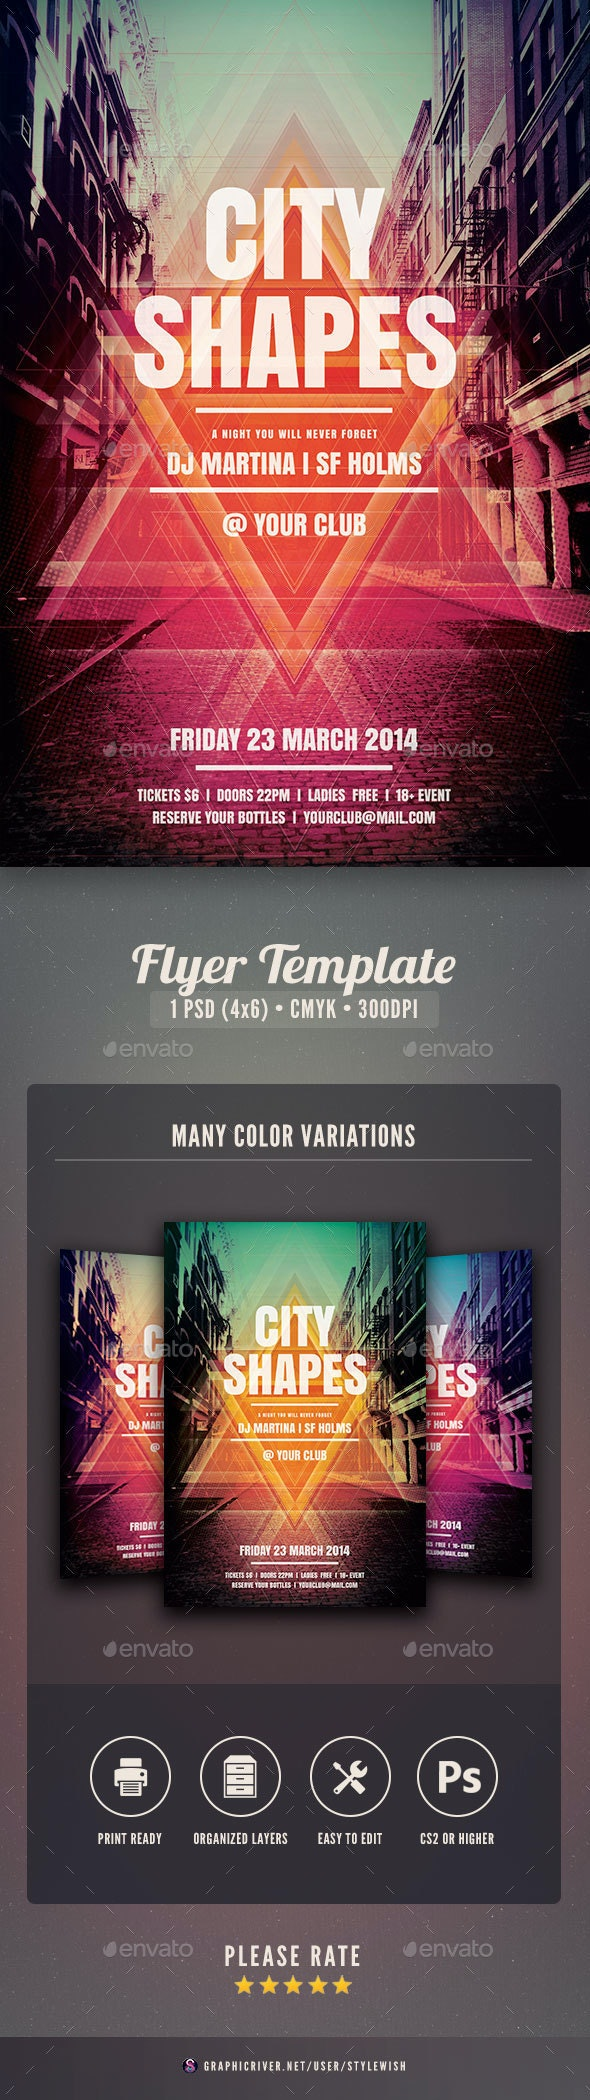 City Shapes Flyer - Clubs & Parties Events